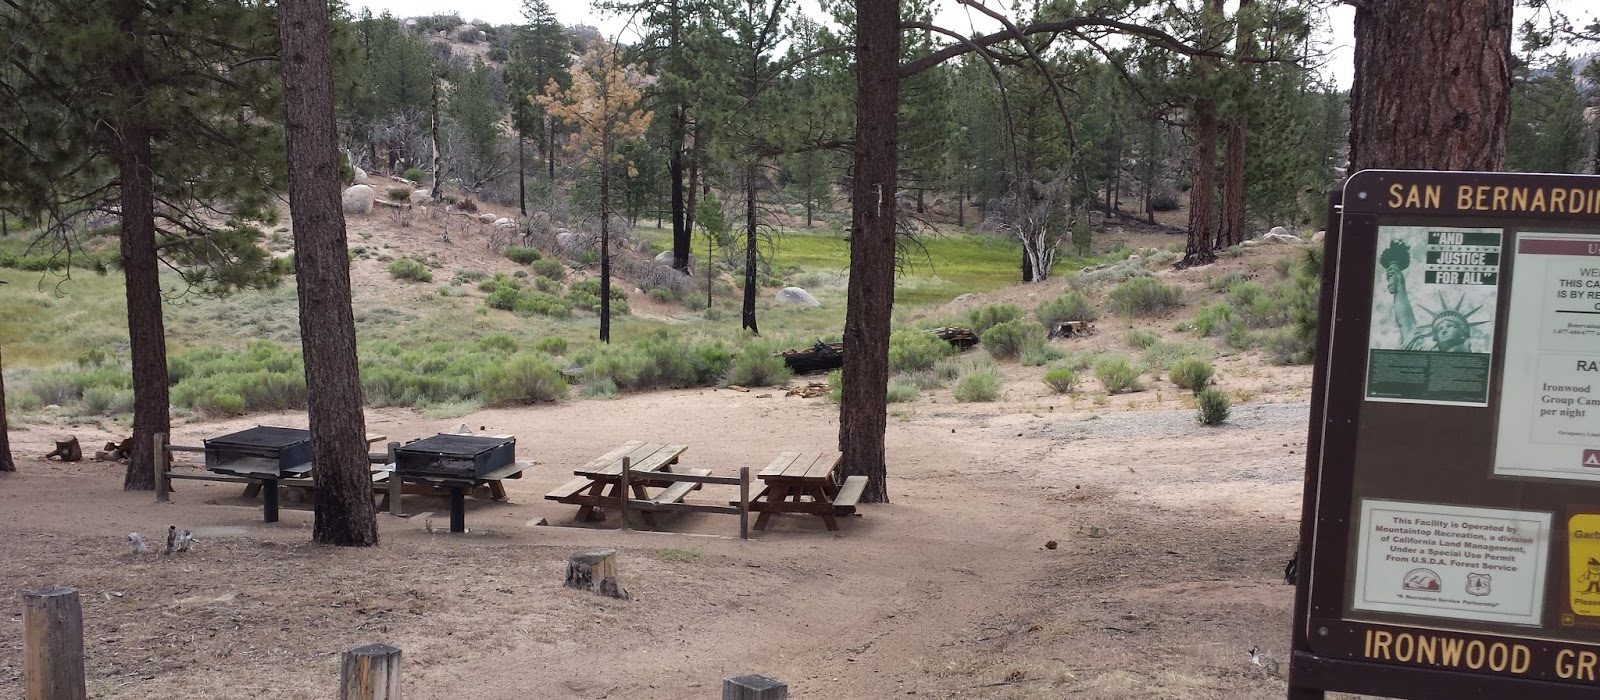 Stay at Ironwood to experience a great time in the outdoors without leaving San Bernadino county.